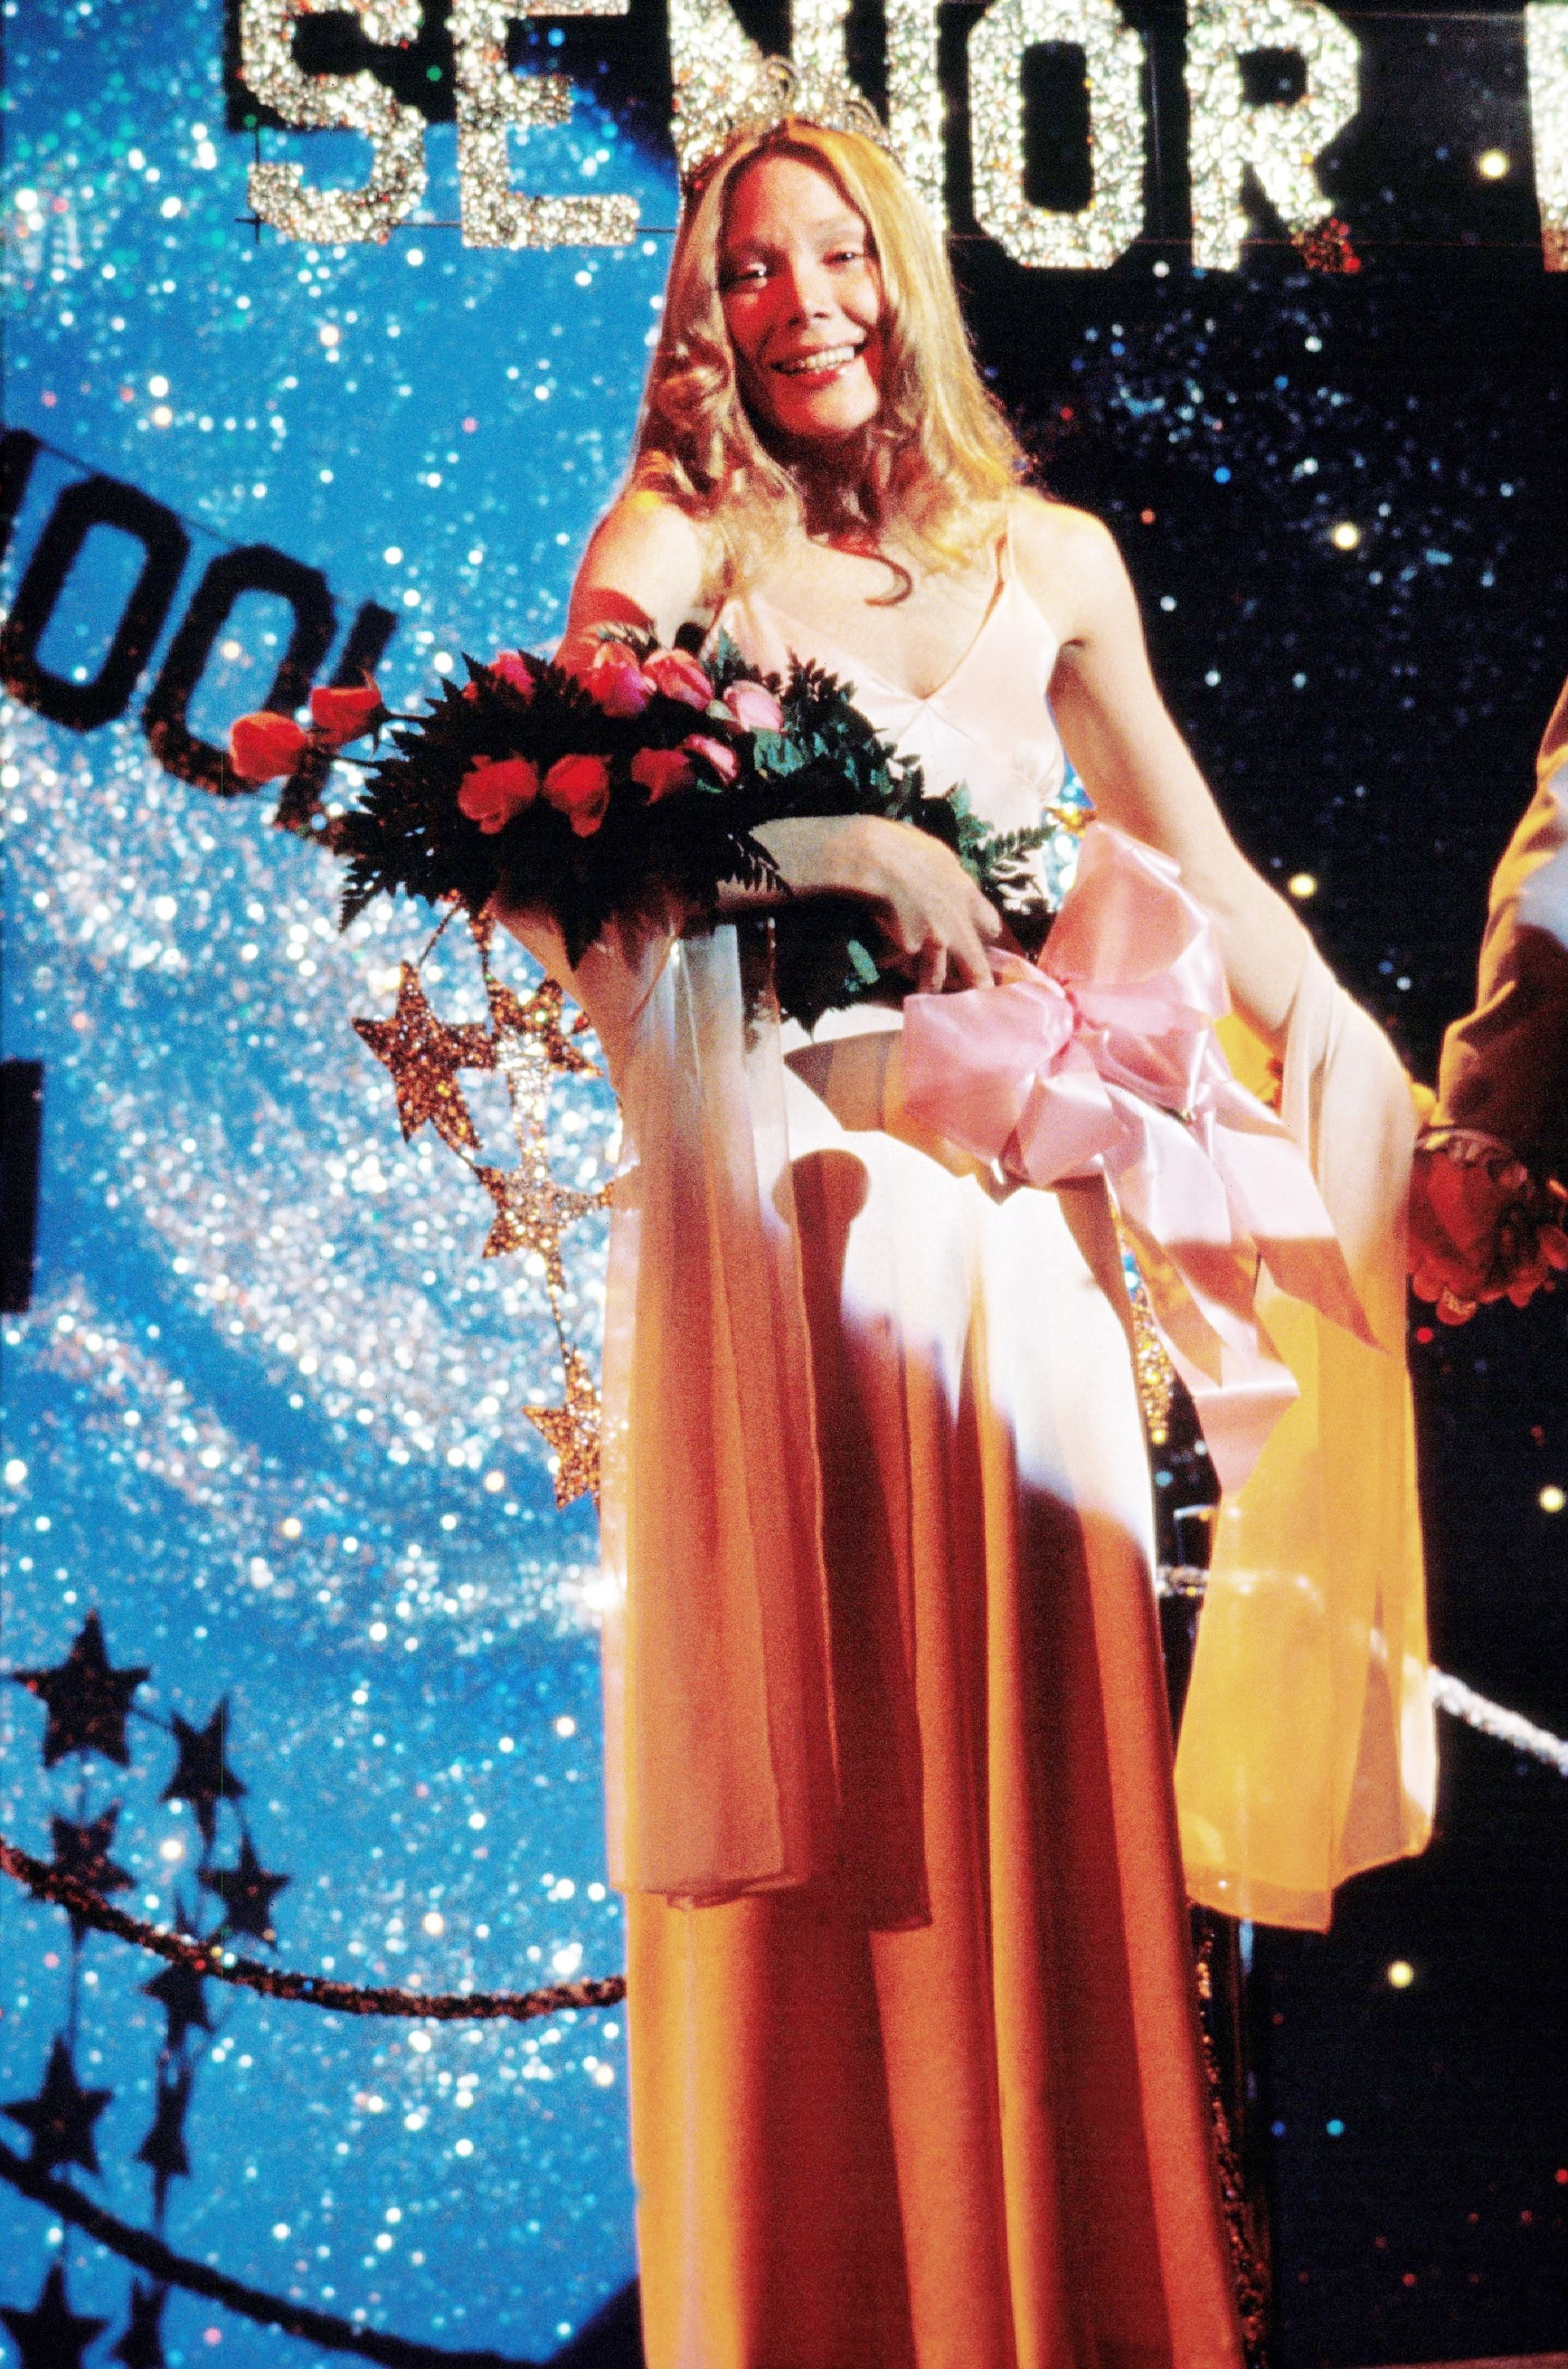 Carrie receiving flowers and a crown in a long pink dress